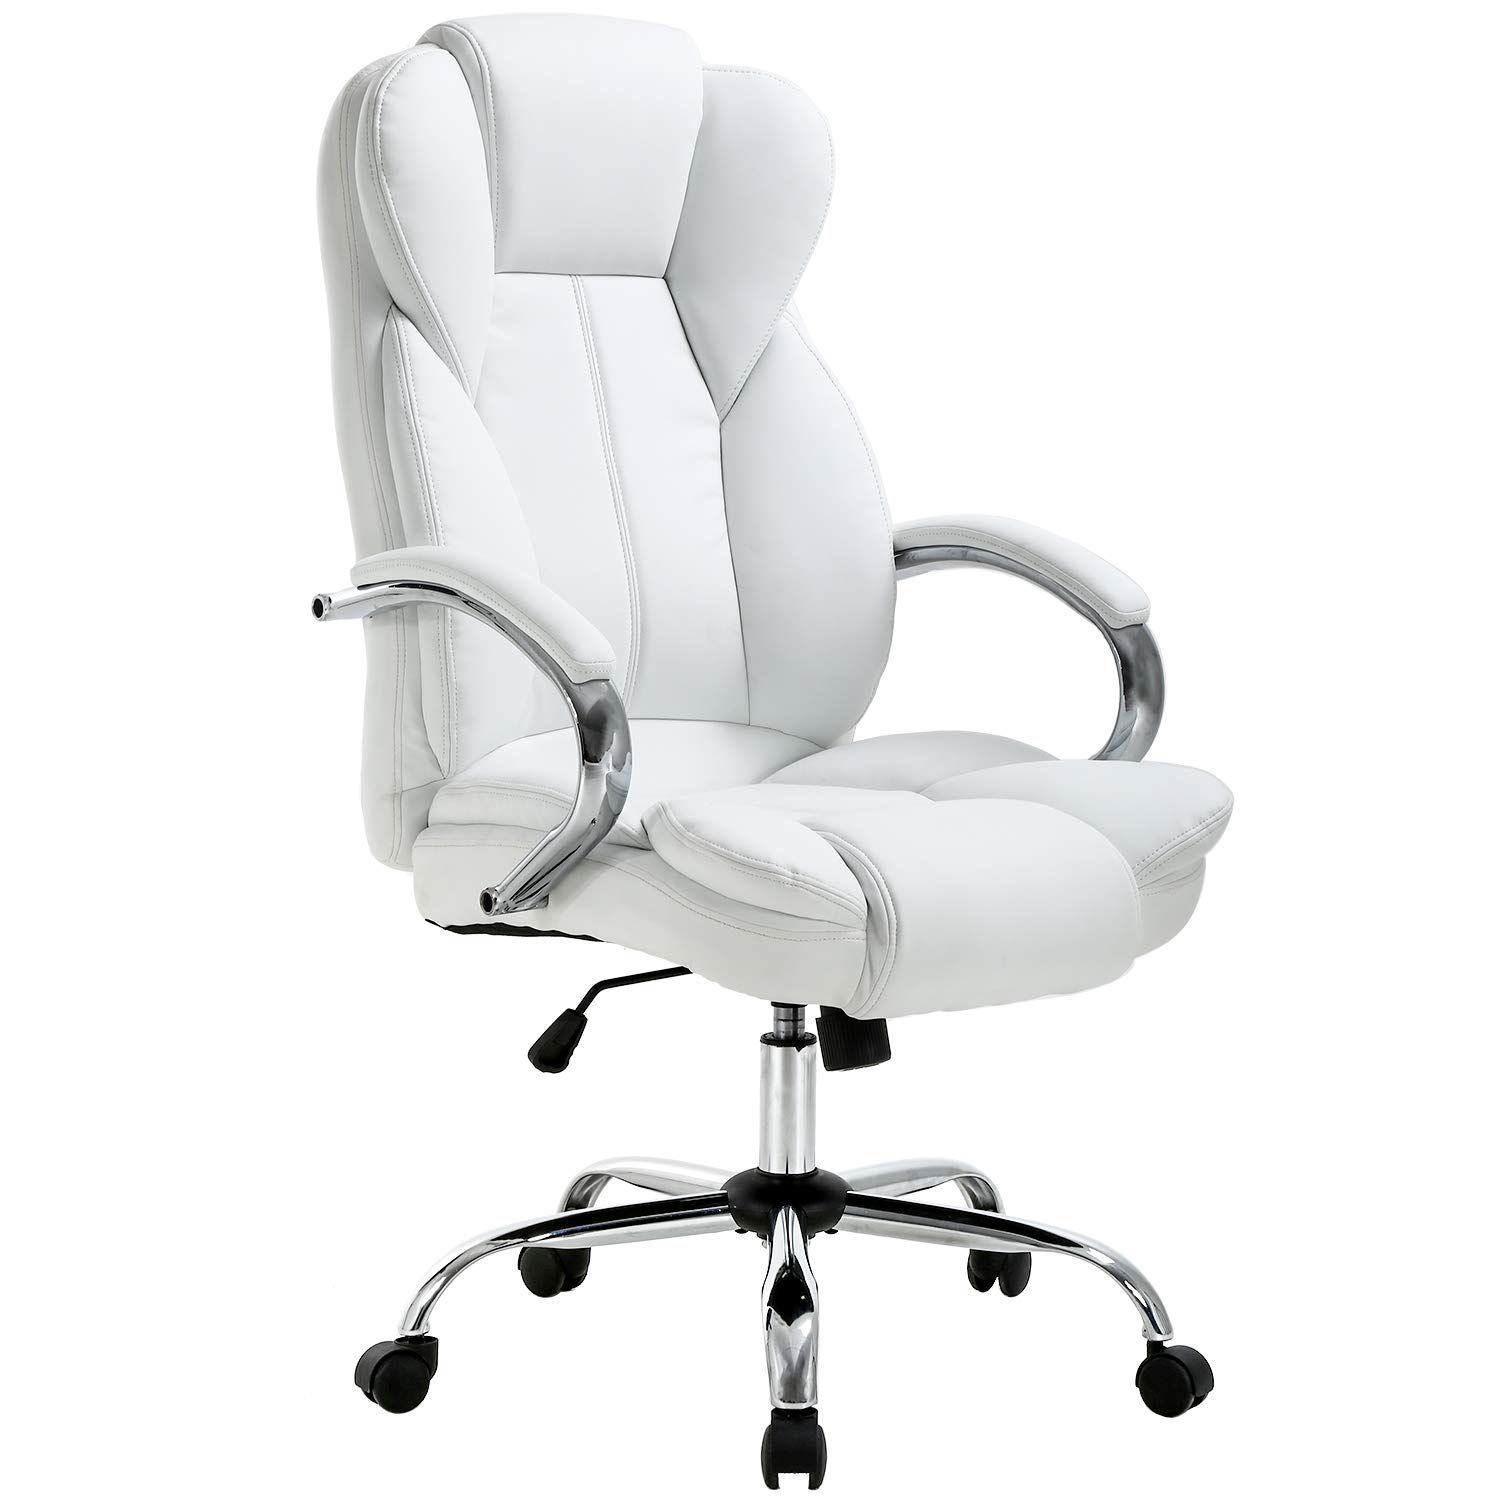 Office Chair In 2020 Comfy Office Chair Office Chair Ergonomic Office Chair